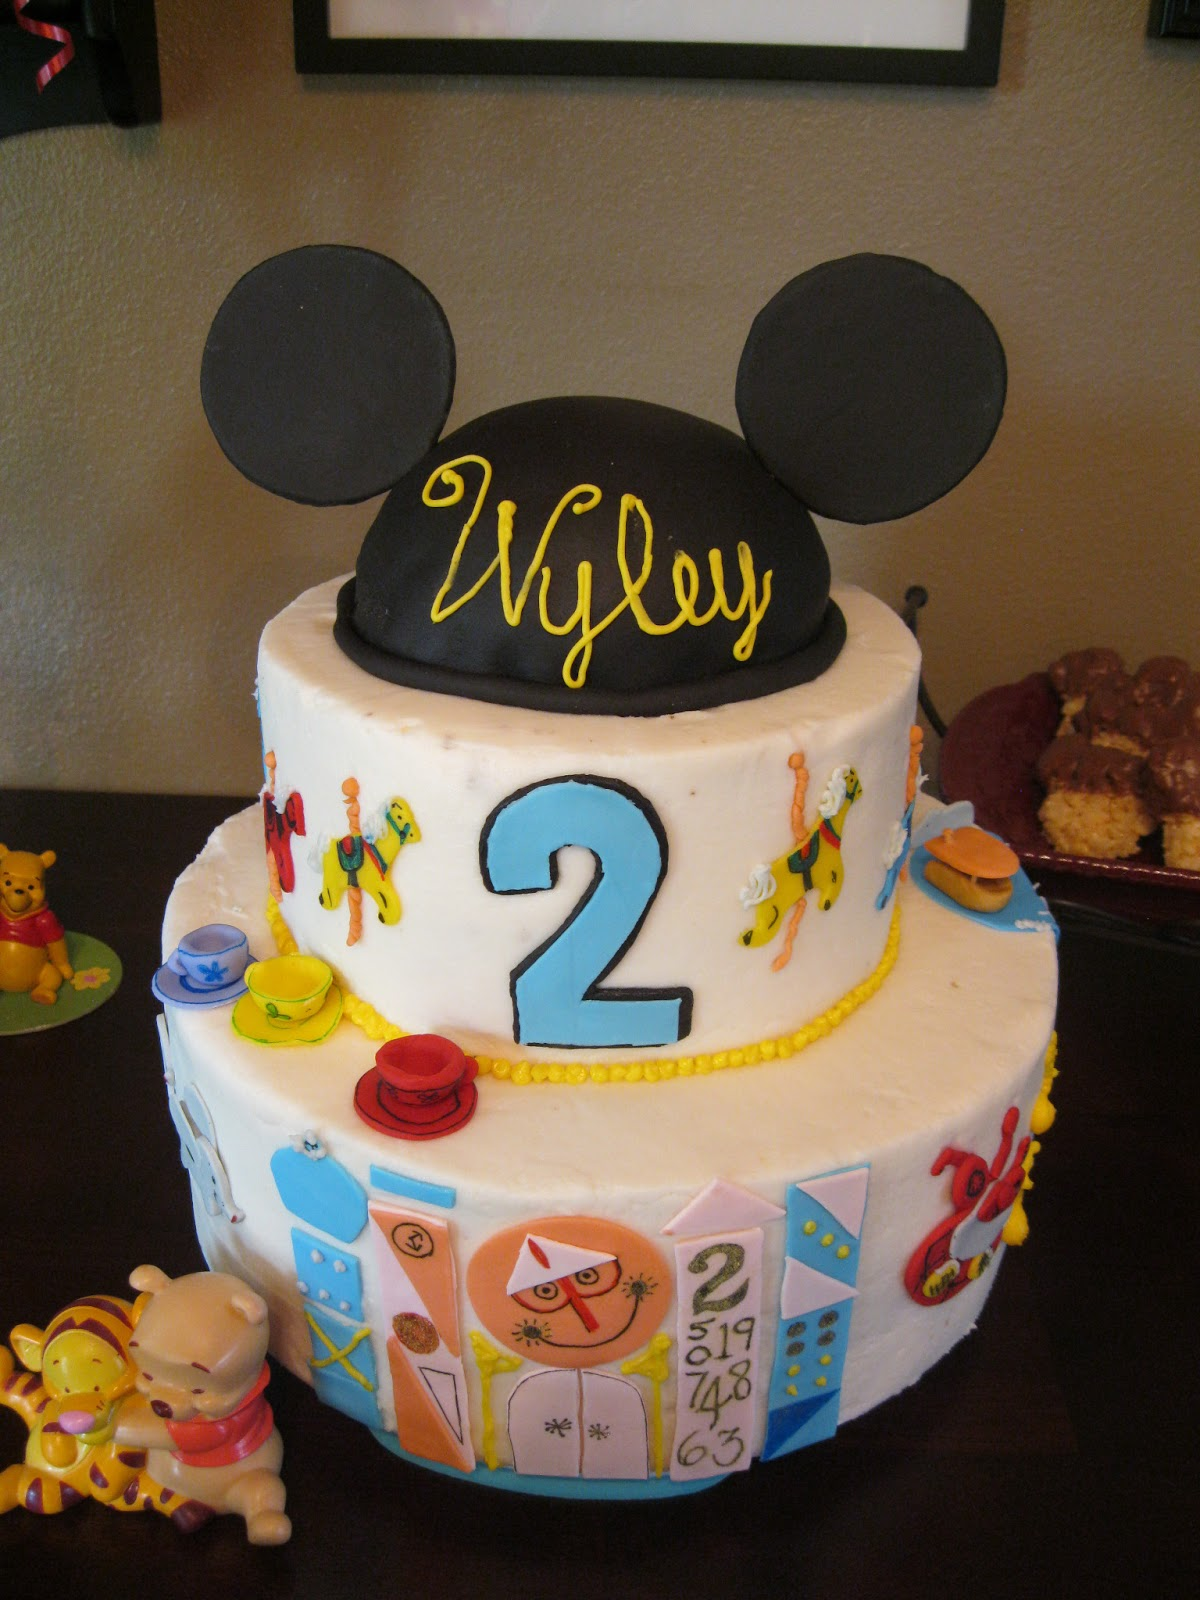 Disneyland Cake Images : Cakes, Crafts, and Kylie: Disneyland Themed Birthday Party